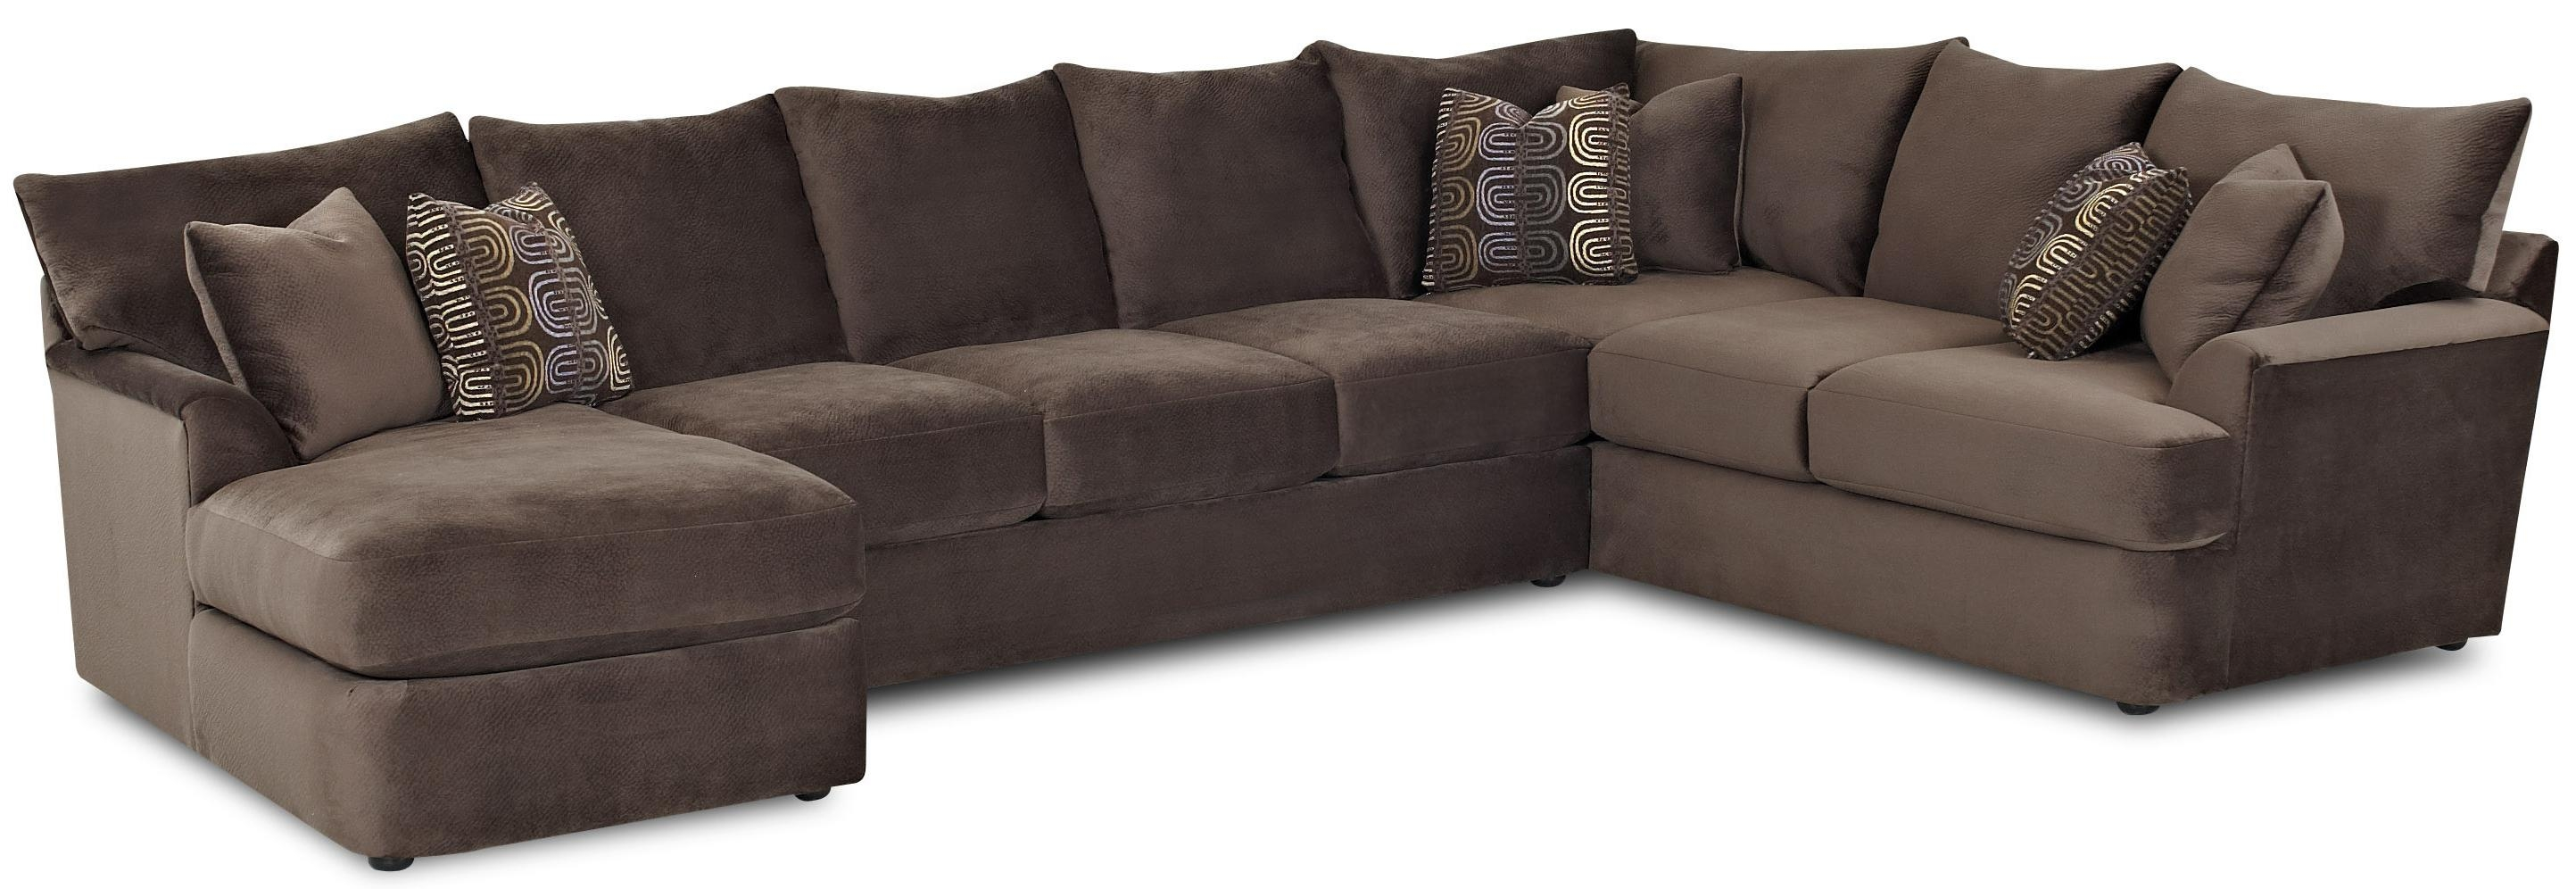 Klaussner Findley L Shaped Sectional Sofa With Left Chaise Value For C Shaped Sectional Sofa (Image 10 of 15)